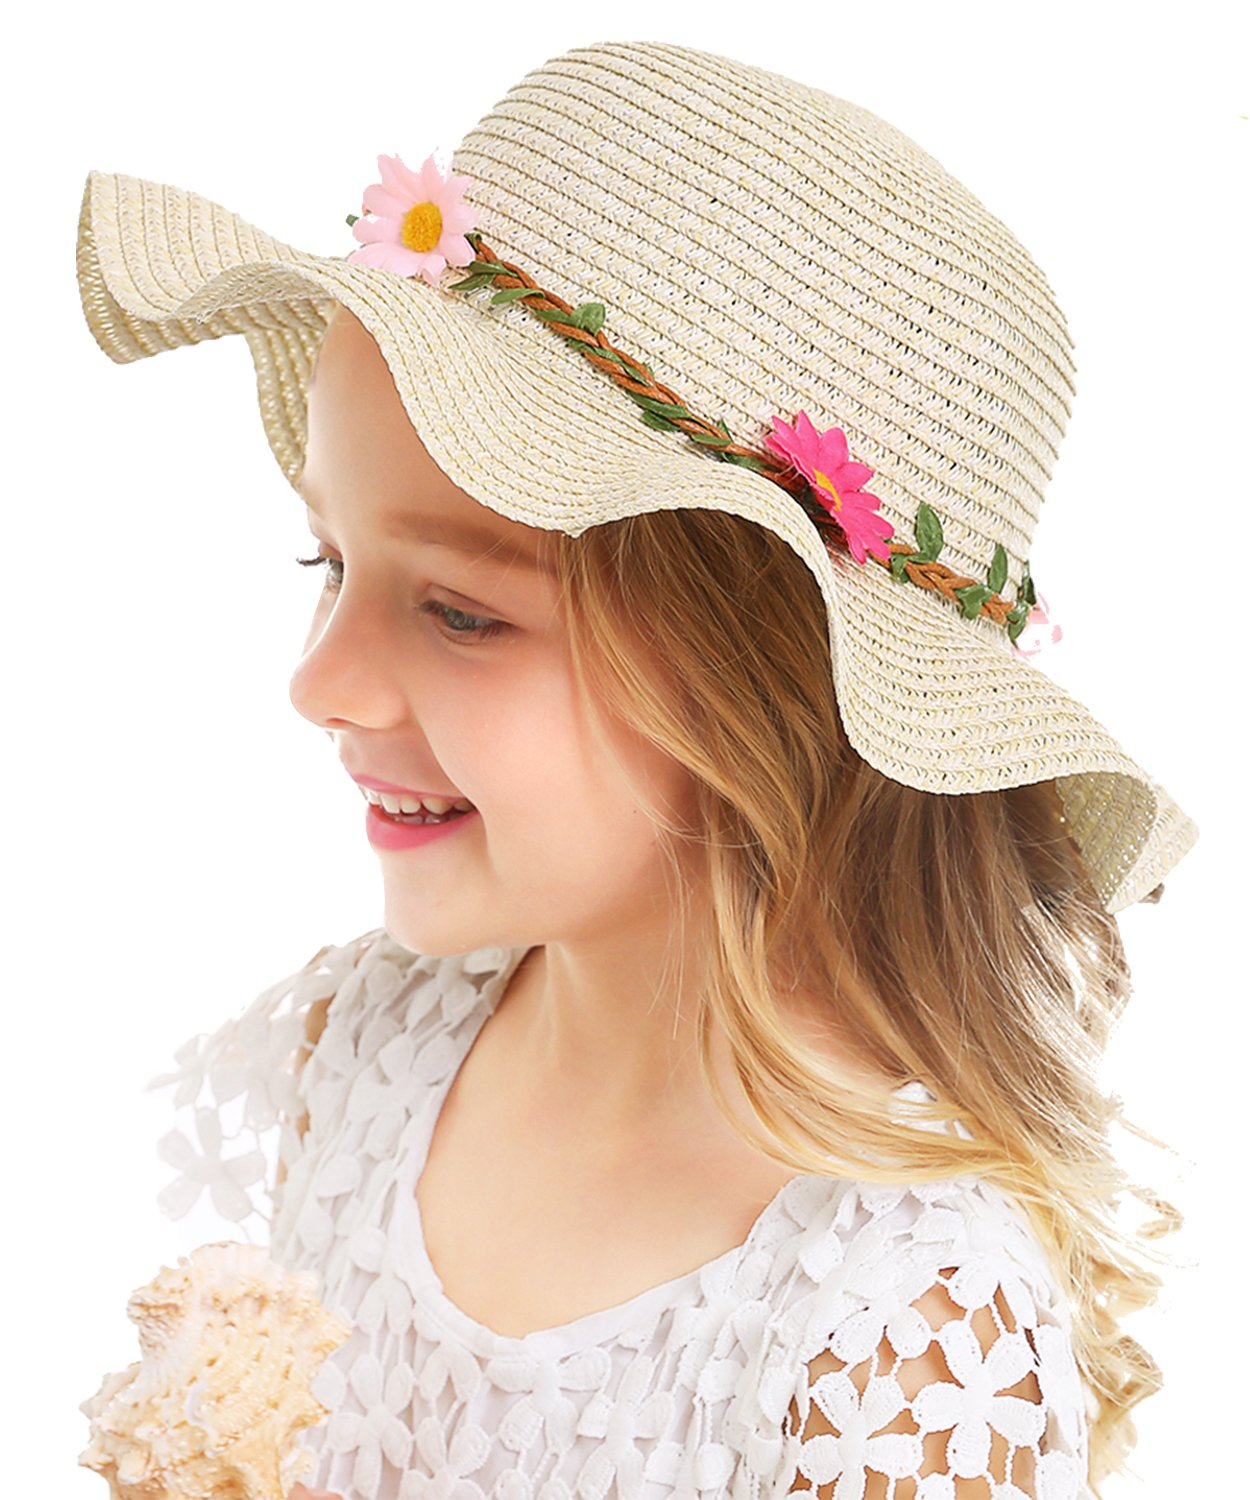 Bienvenu Sun Straw Hat Kids Girls Large Wide Brim Travel Beach Beanie Cap,Beige by Bienvenu (Image #1)